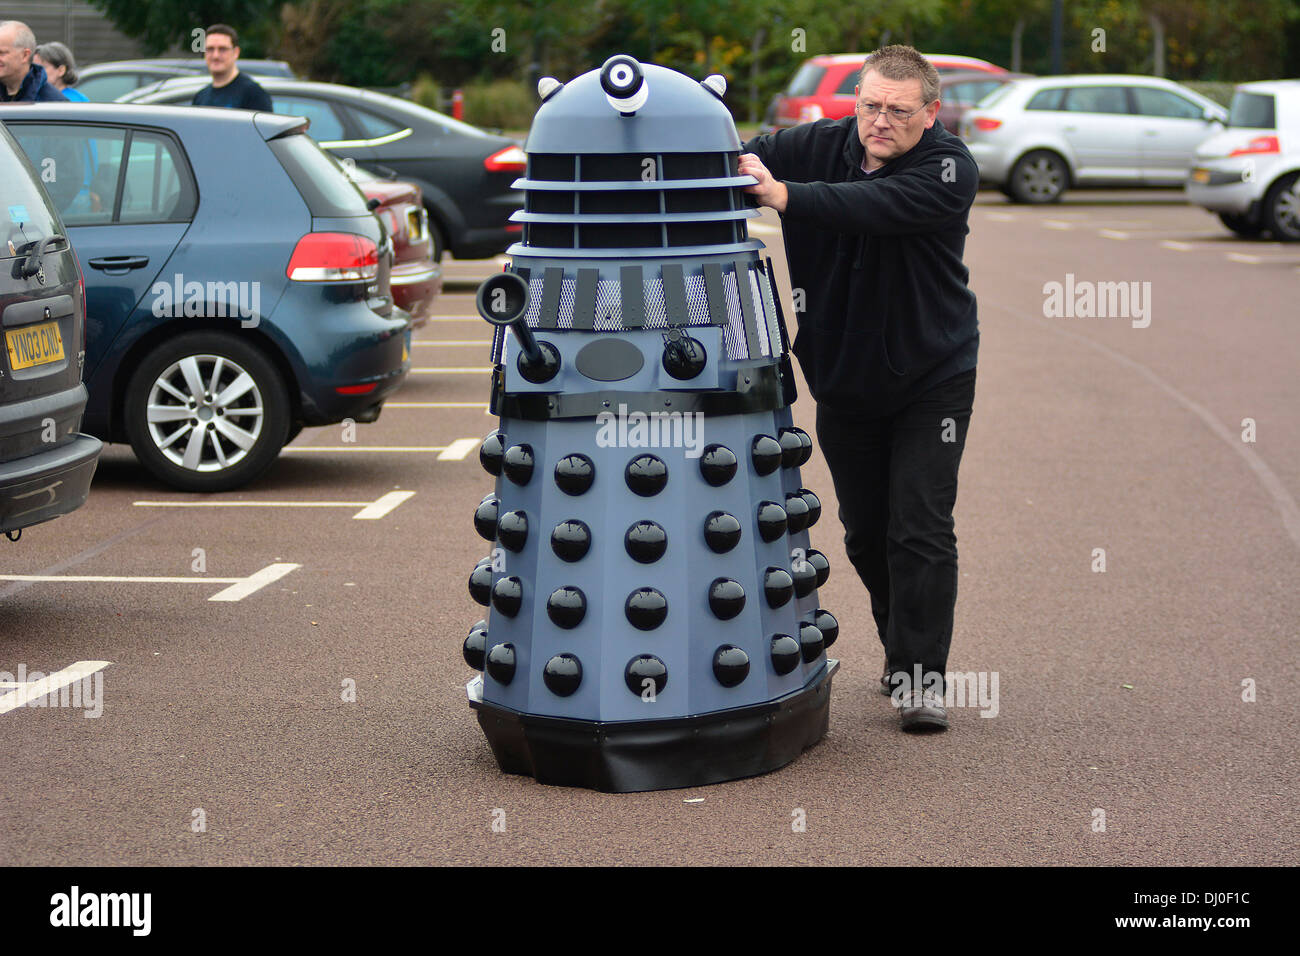 Ray Hyde from Barnsley wheels in one of the 20 Daleks displayed at the 'Science of the Timelords' event are assembled at The National Space Centre at Leicester - Stock Image